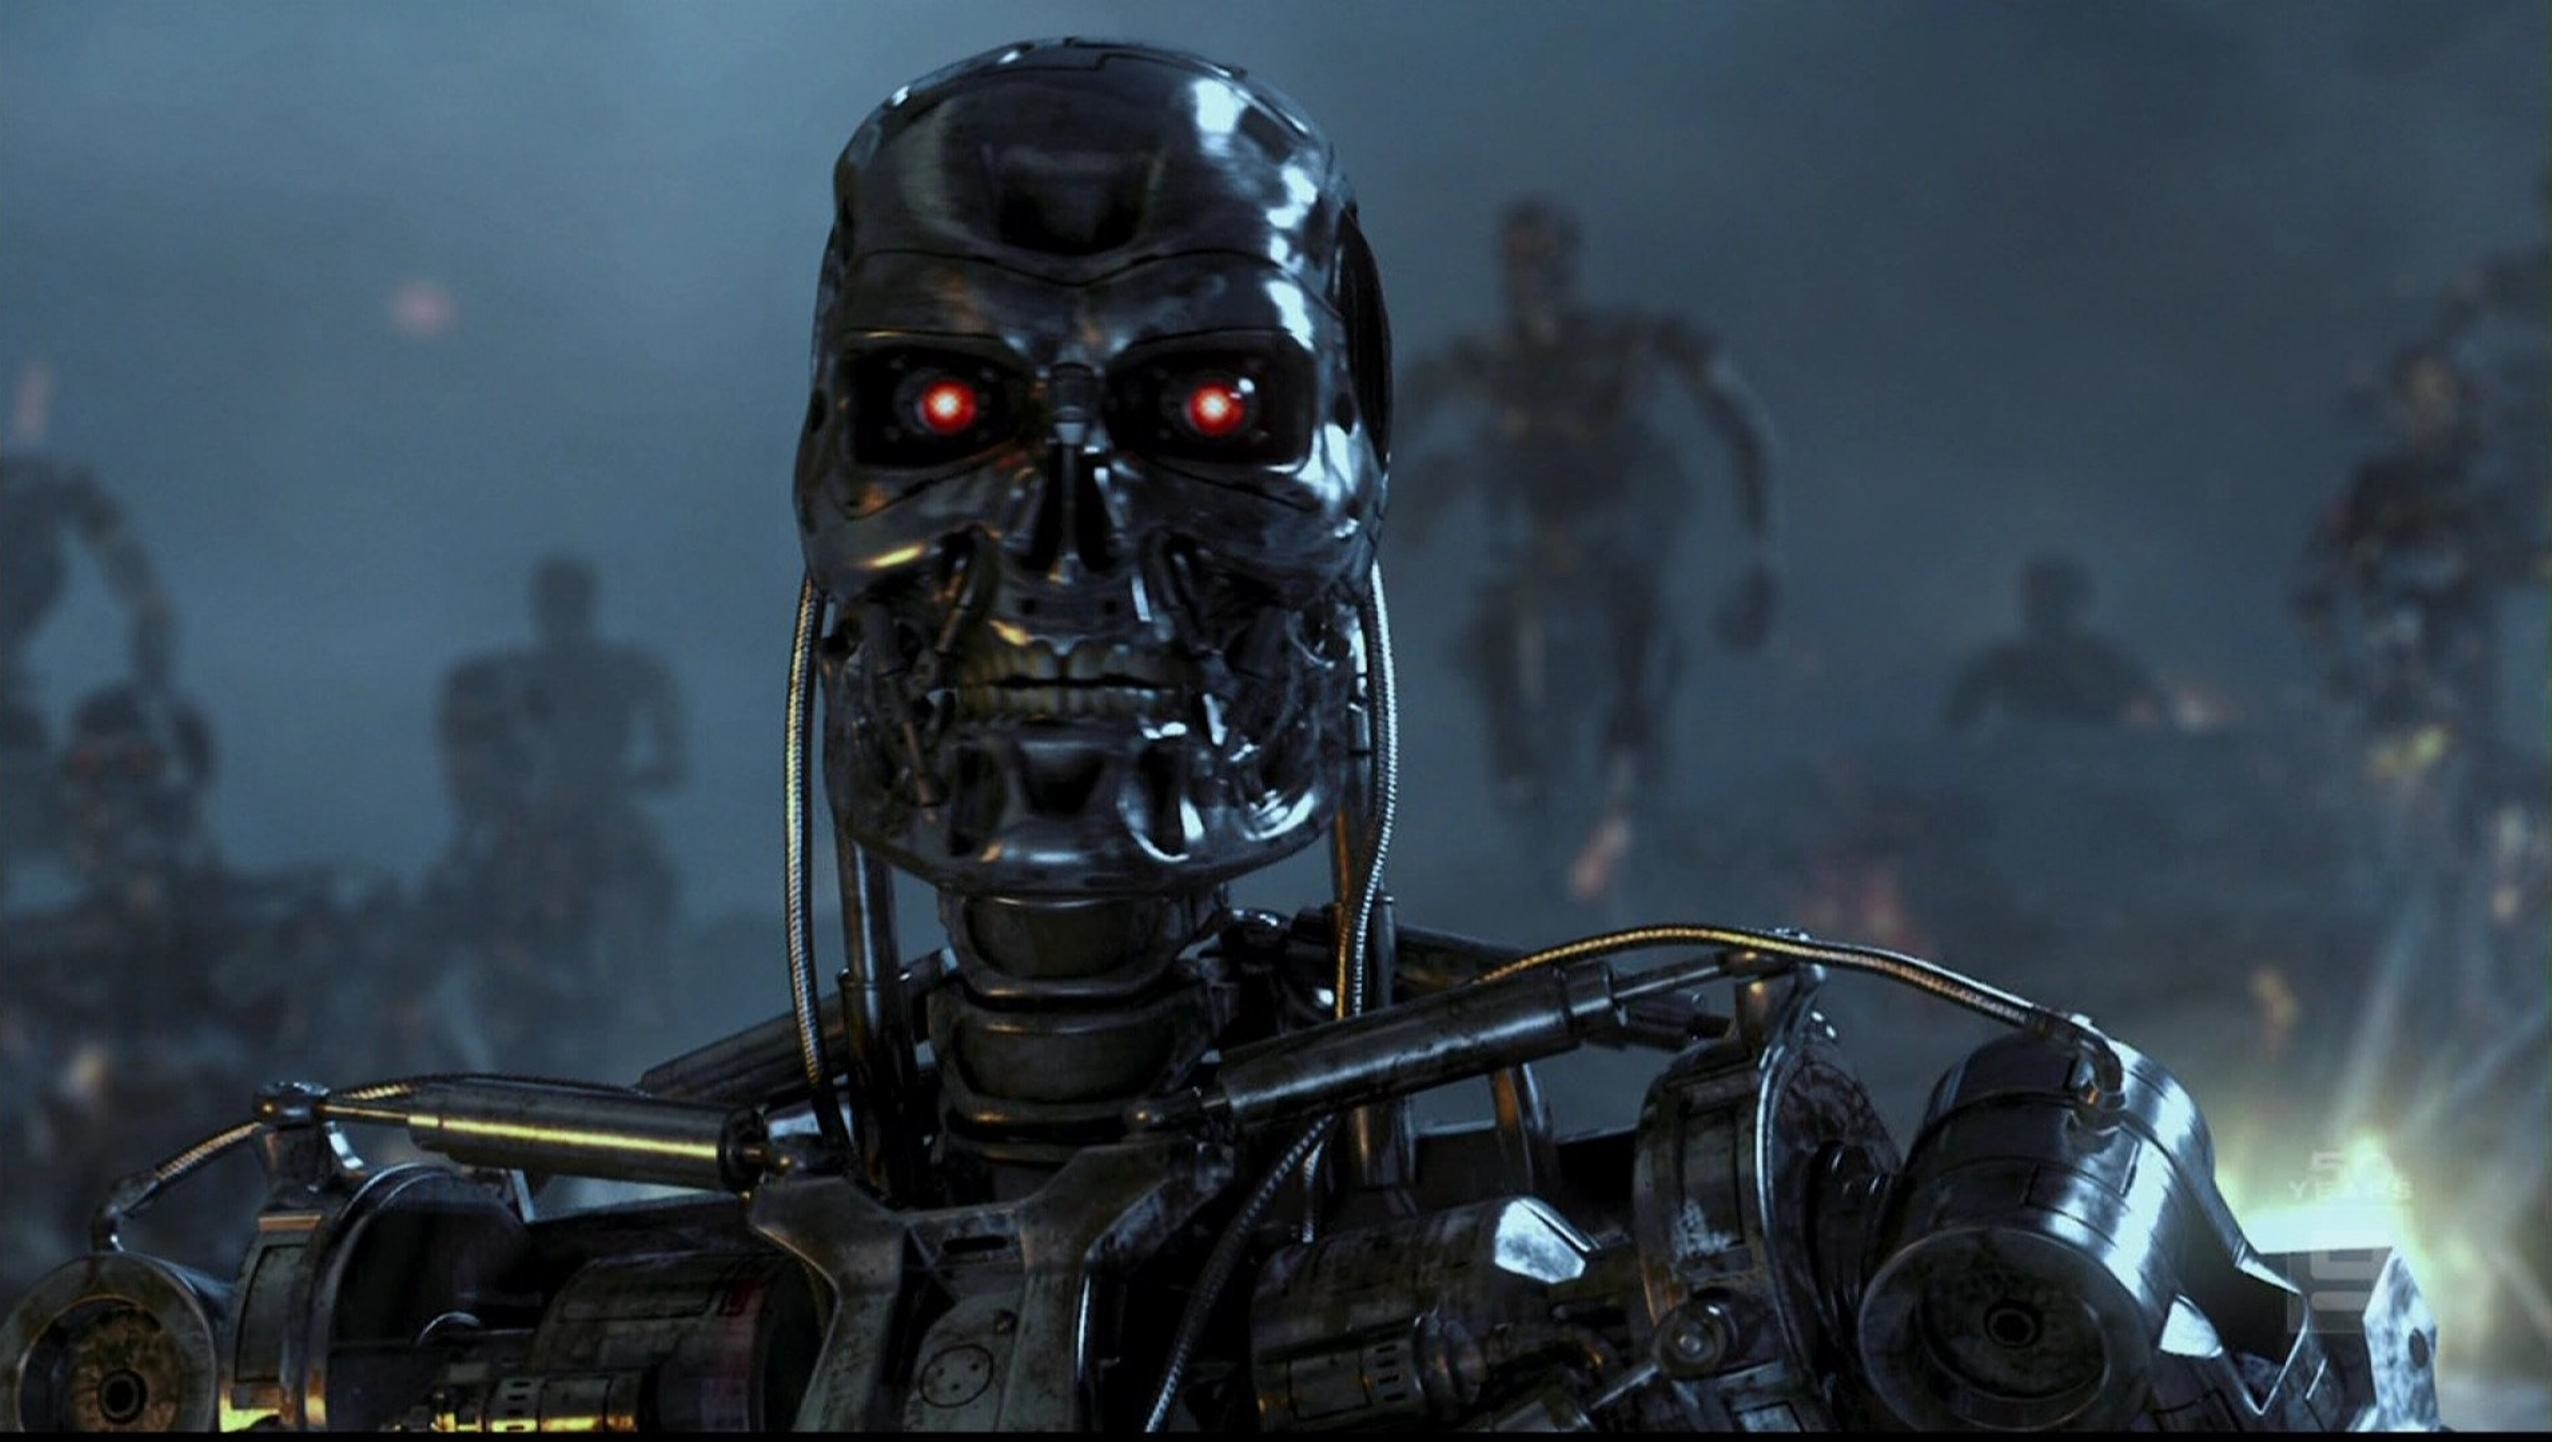 """Res: 2552x1442, Wallpaper for """"Terminator 2: Judgment Day"""" ..."""